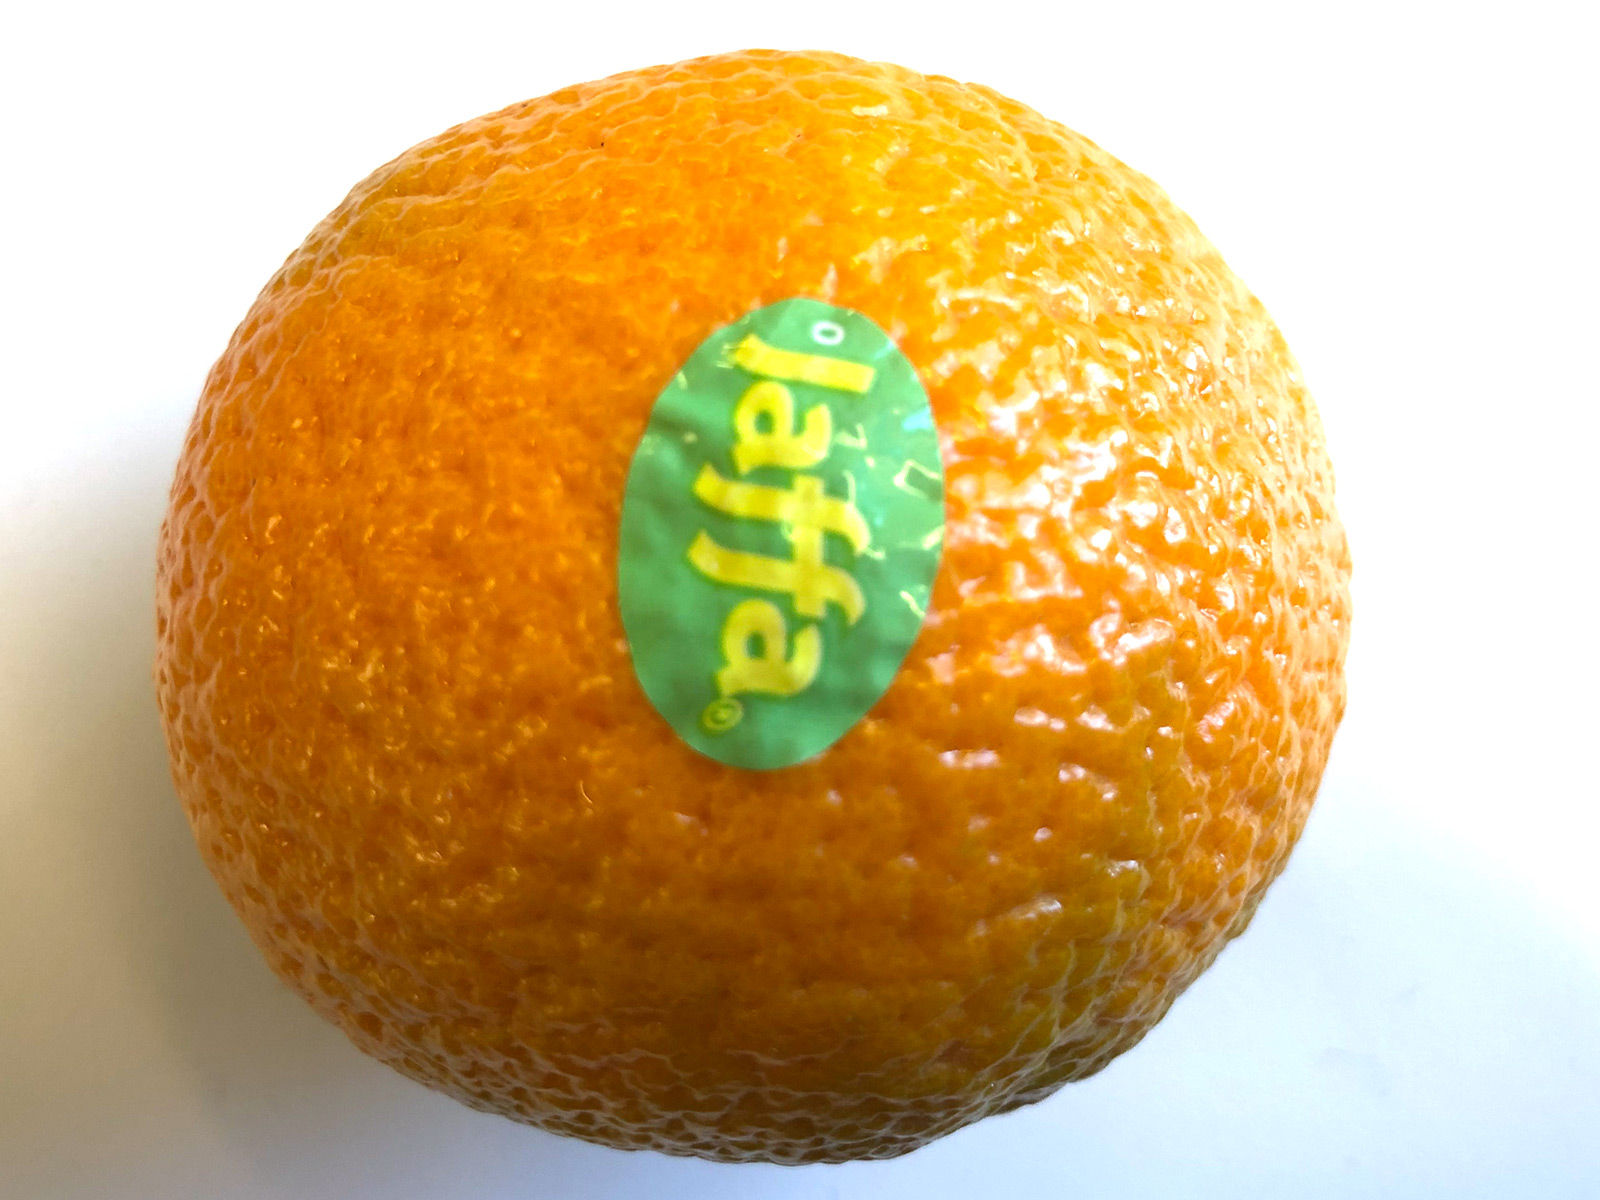 4453-jaffa-honey-tangerine.jpg